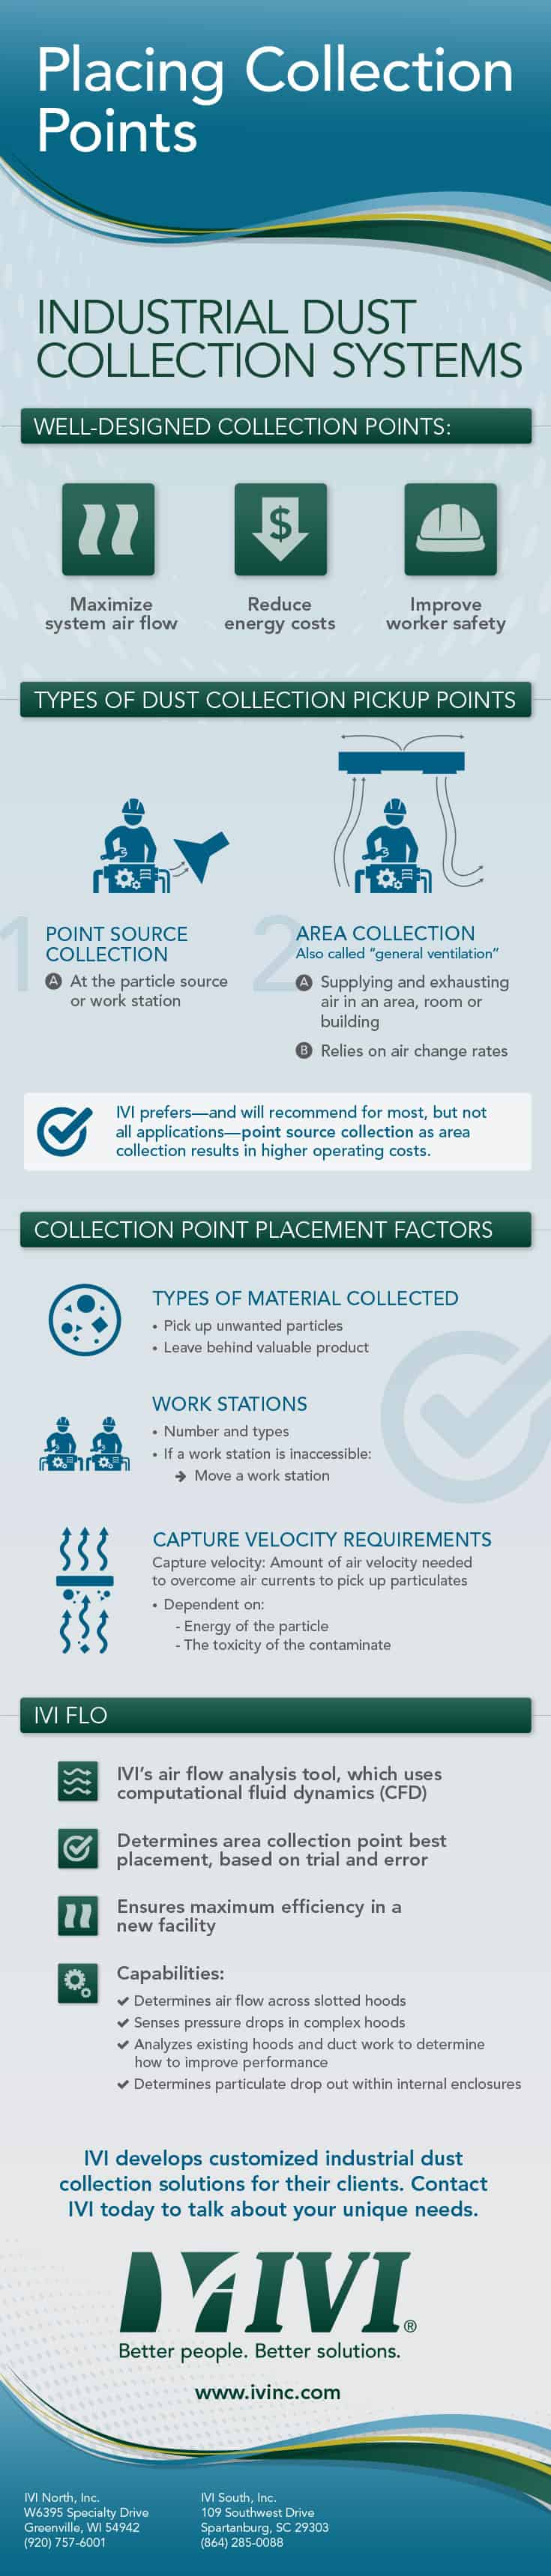 Placing Collection Points infographic